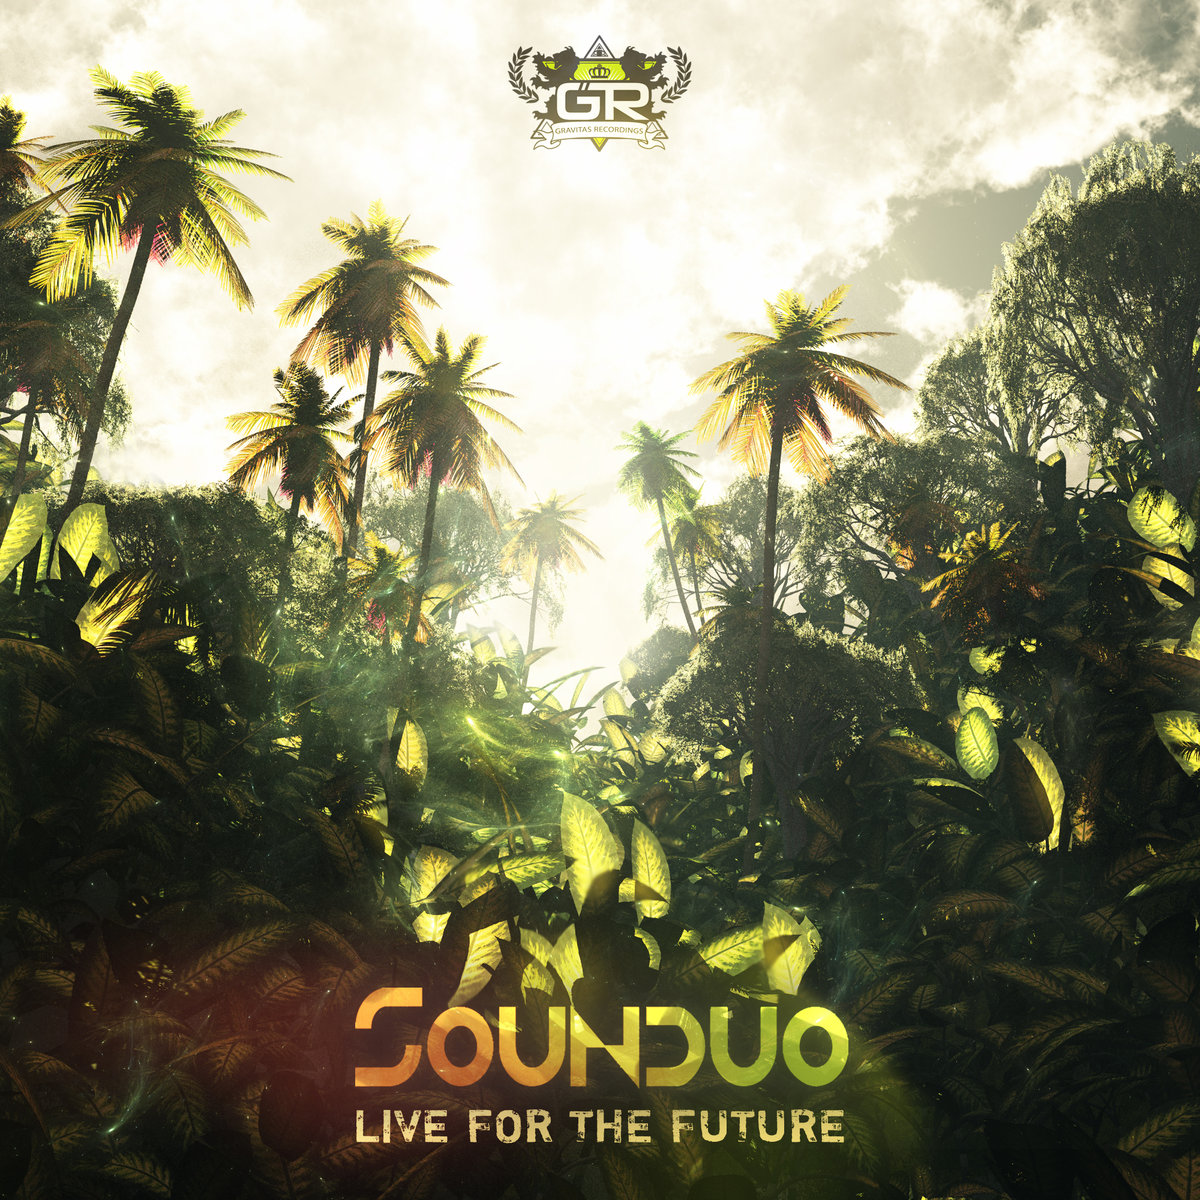 Sounduo - Fyah Bun Dem @ 'Live For The Future' album (Austin)